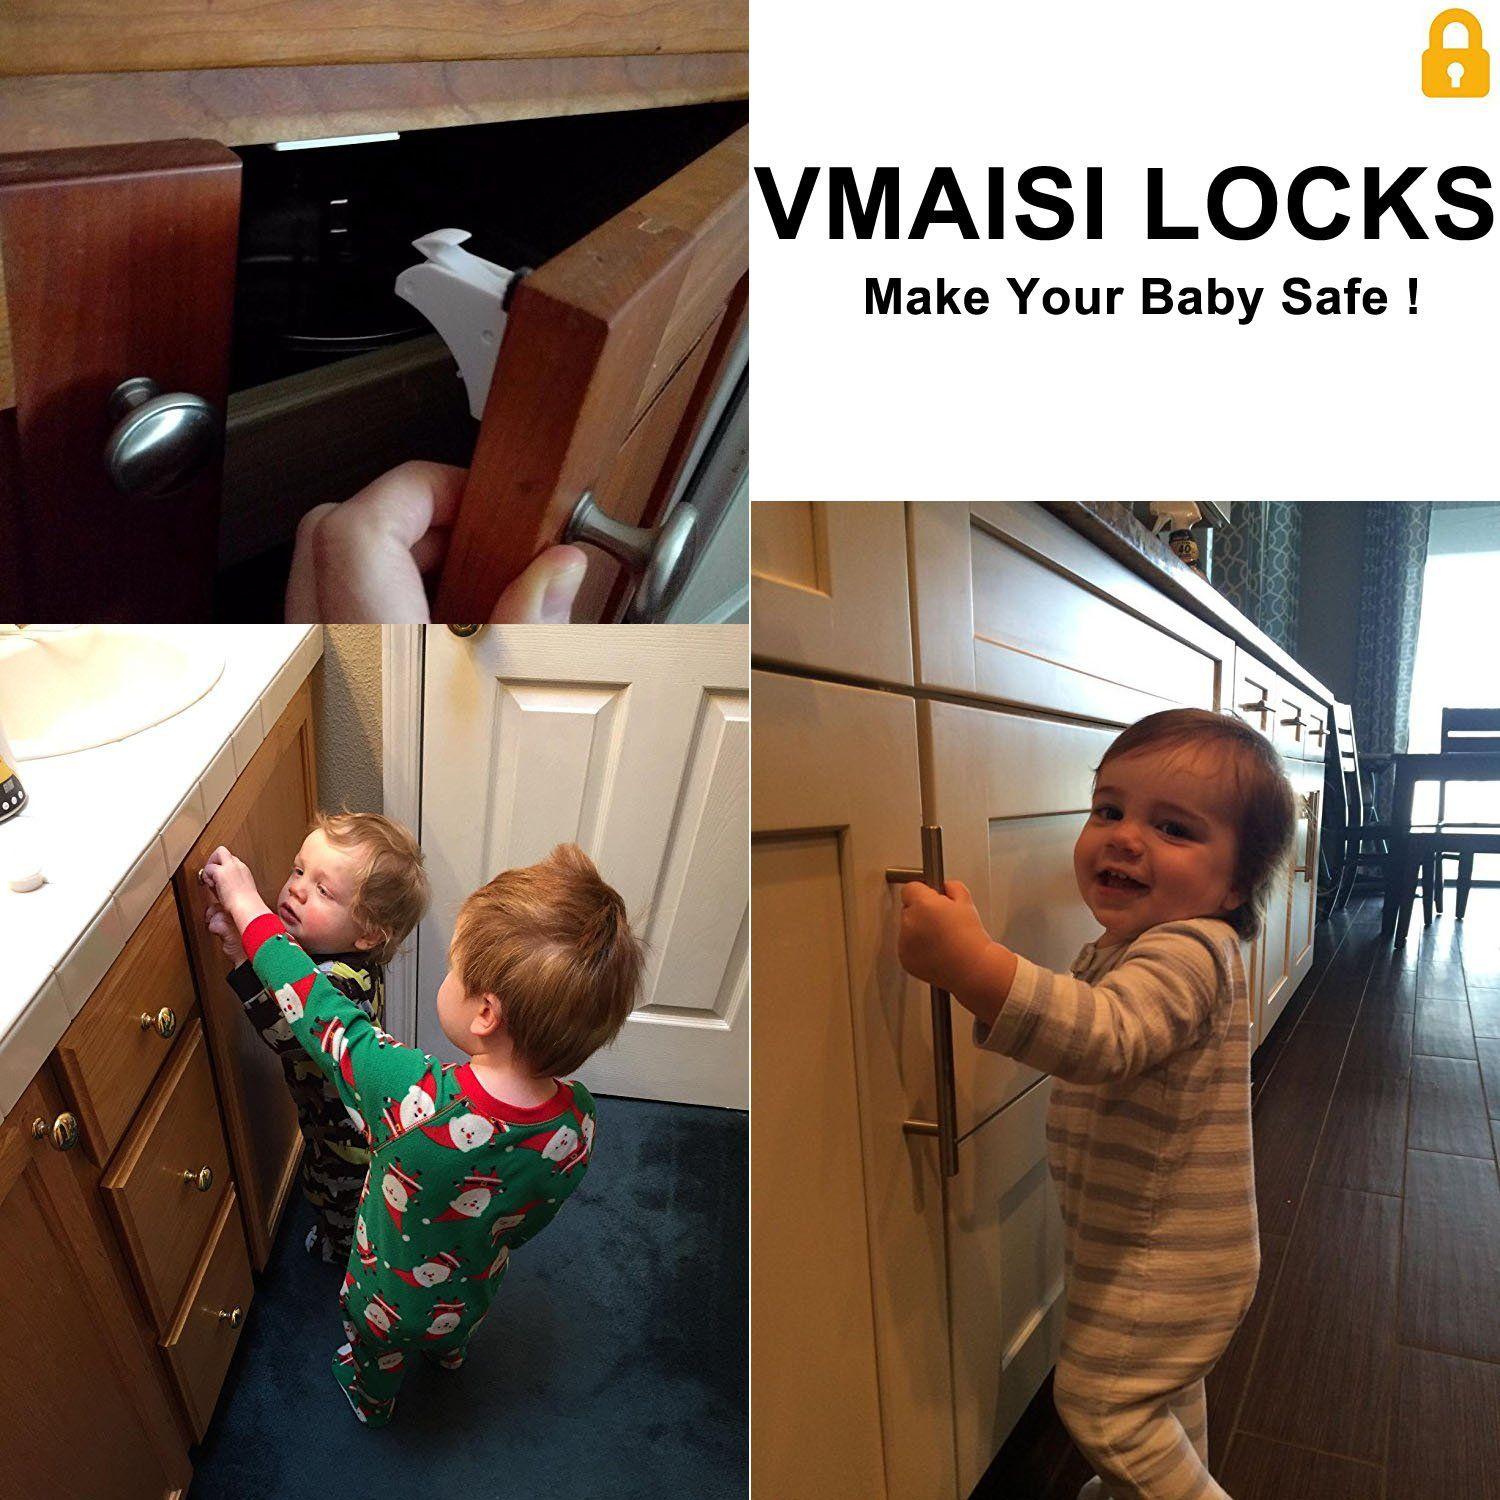 Baby Proofing Locks Child Safety VMAISI